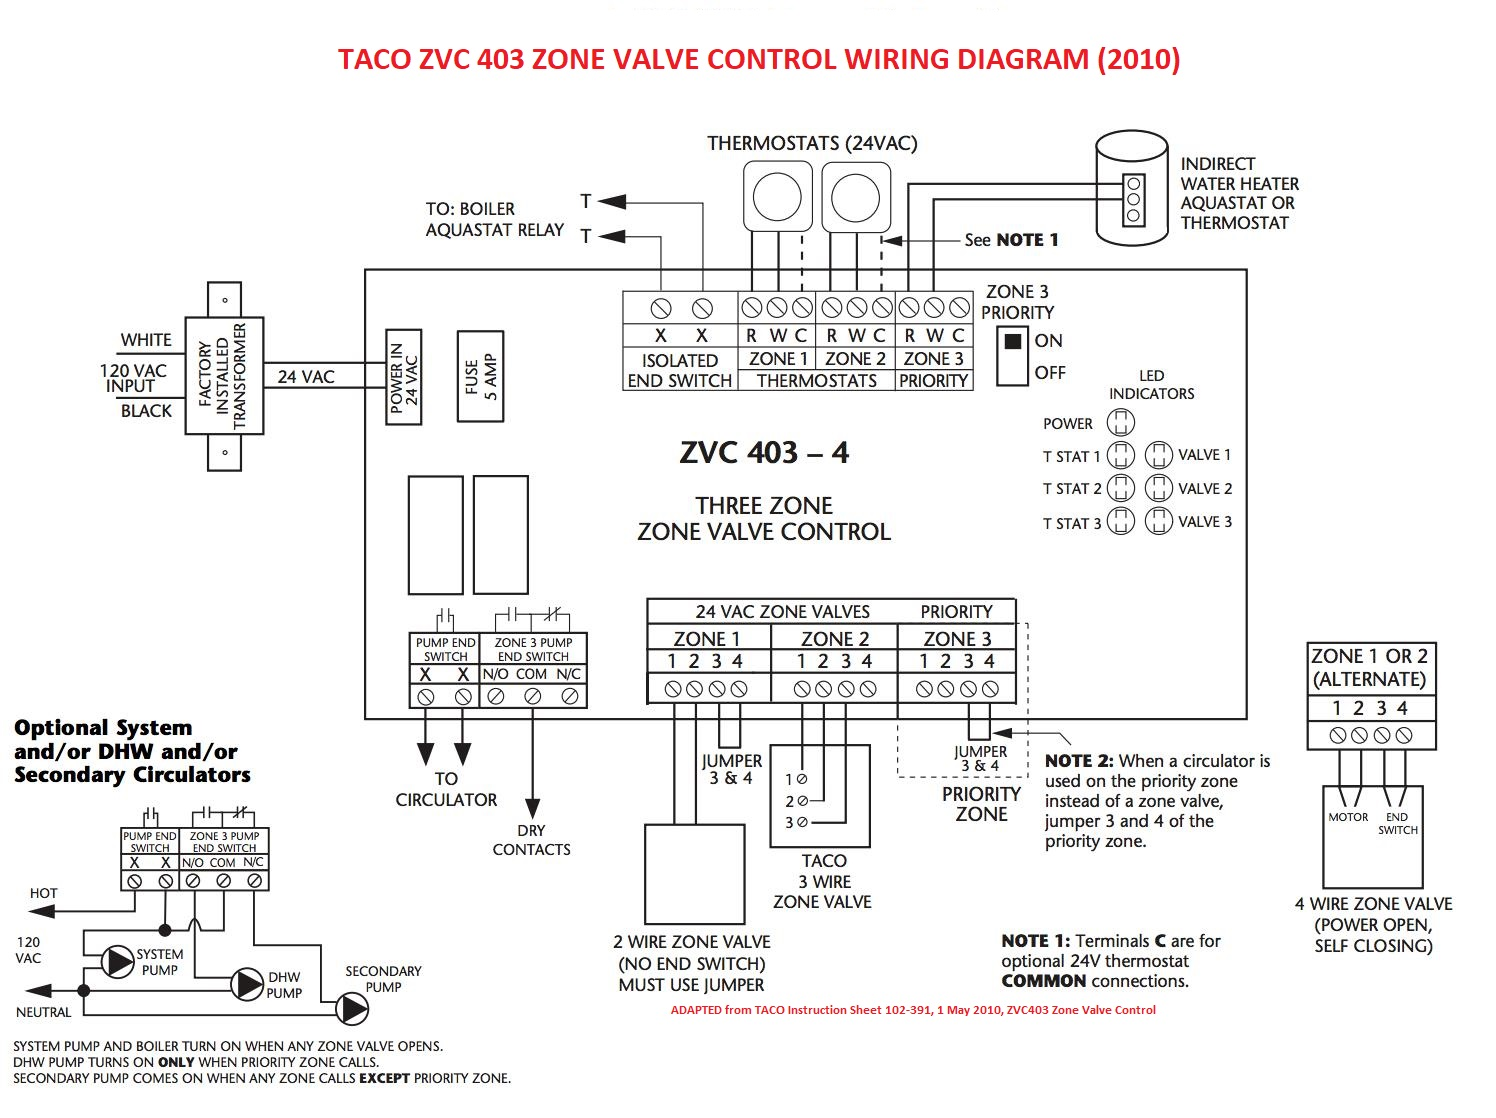 Zone Valve Wiring Installation & Instructions Guide To Heating IAC Valve Wiring  Diagrams Valve Wiring Diagram